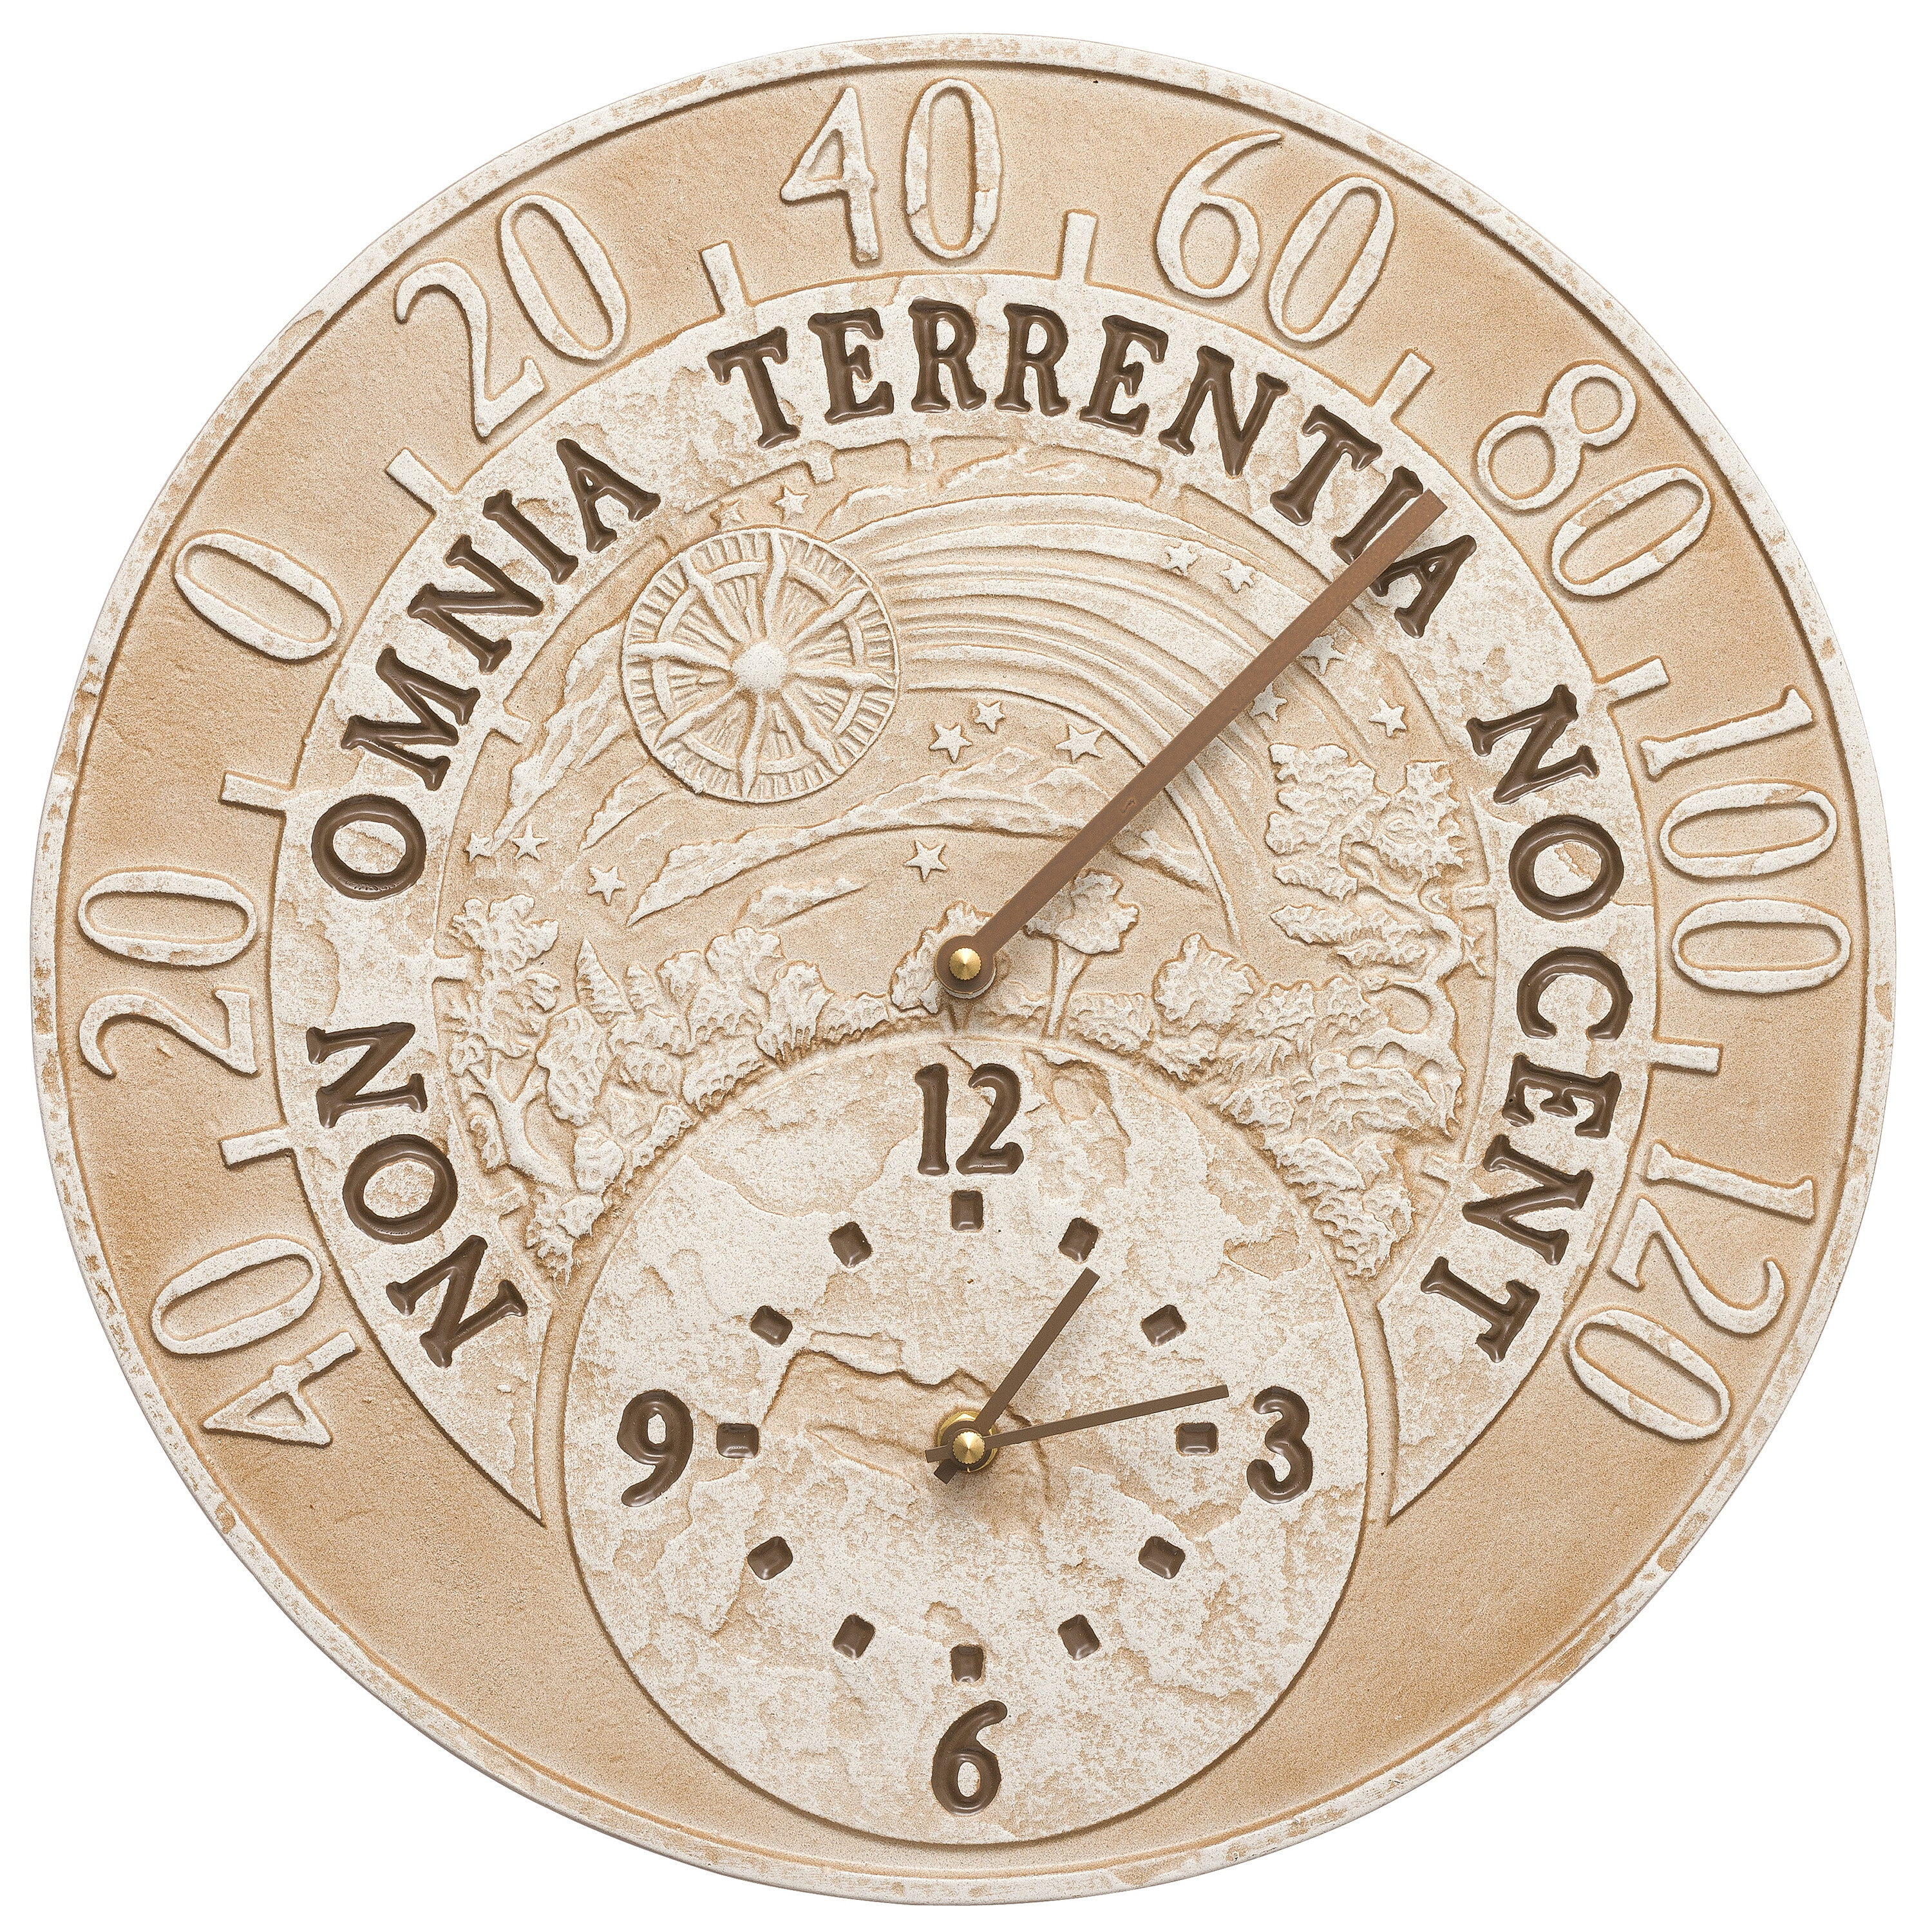 Celestial Indoor Outdoor Thermometer Wall Clock